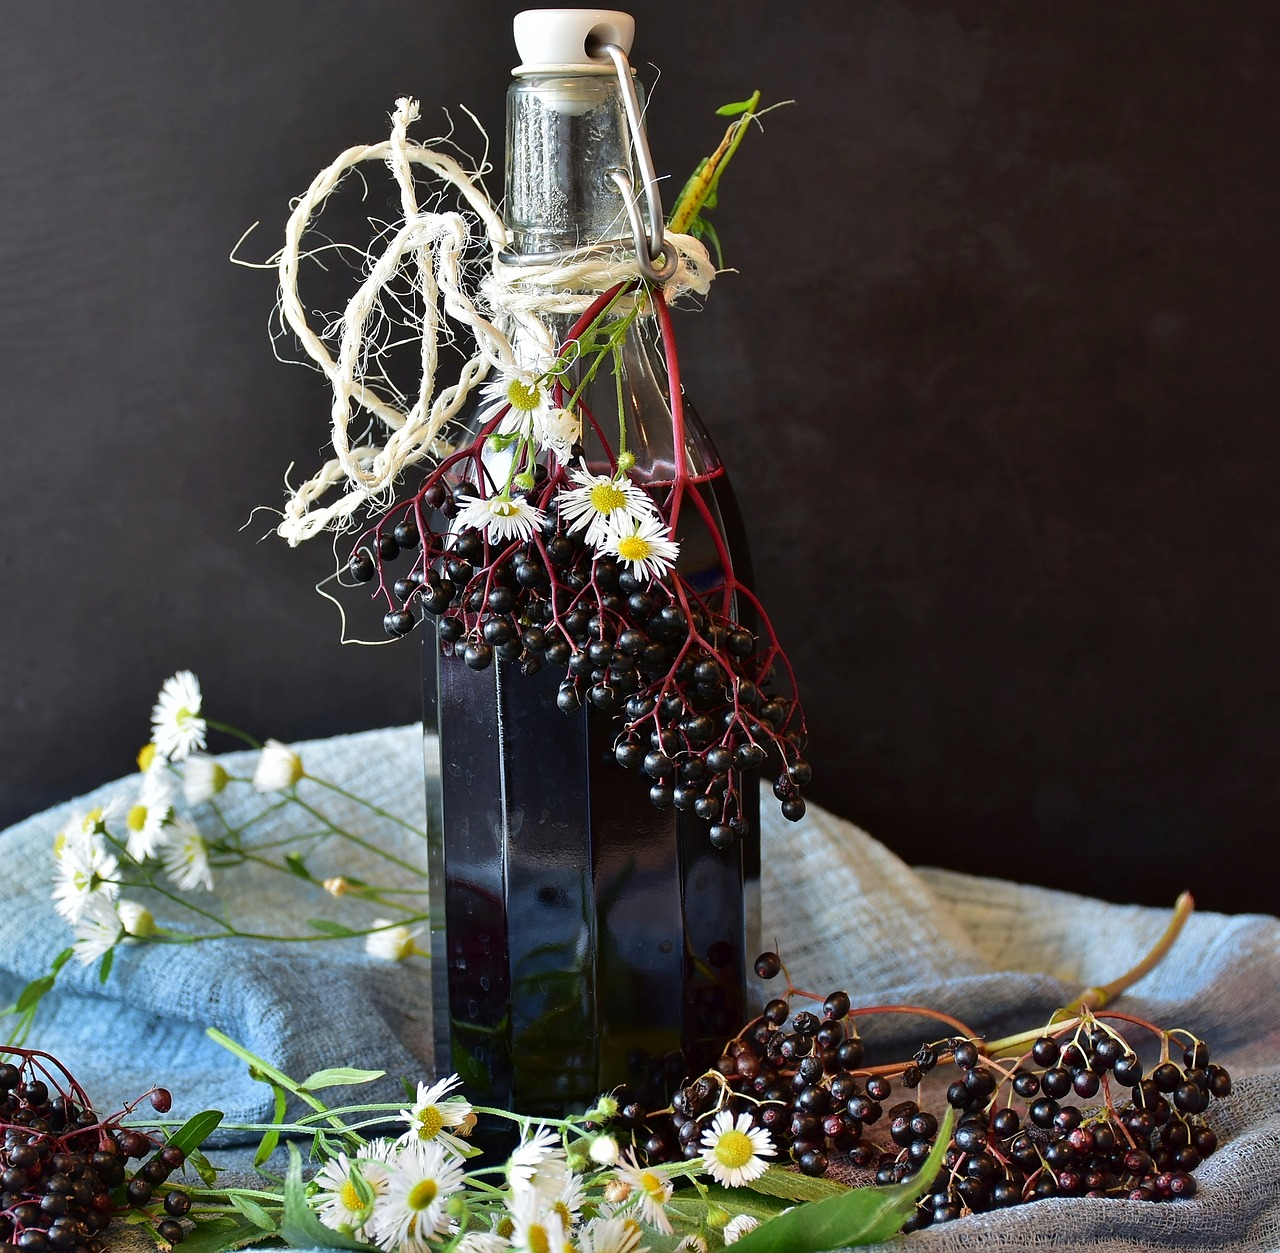 elderberries 6.jpg